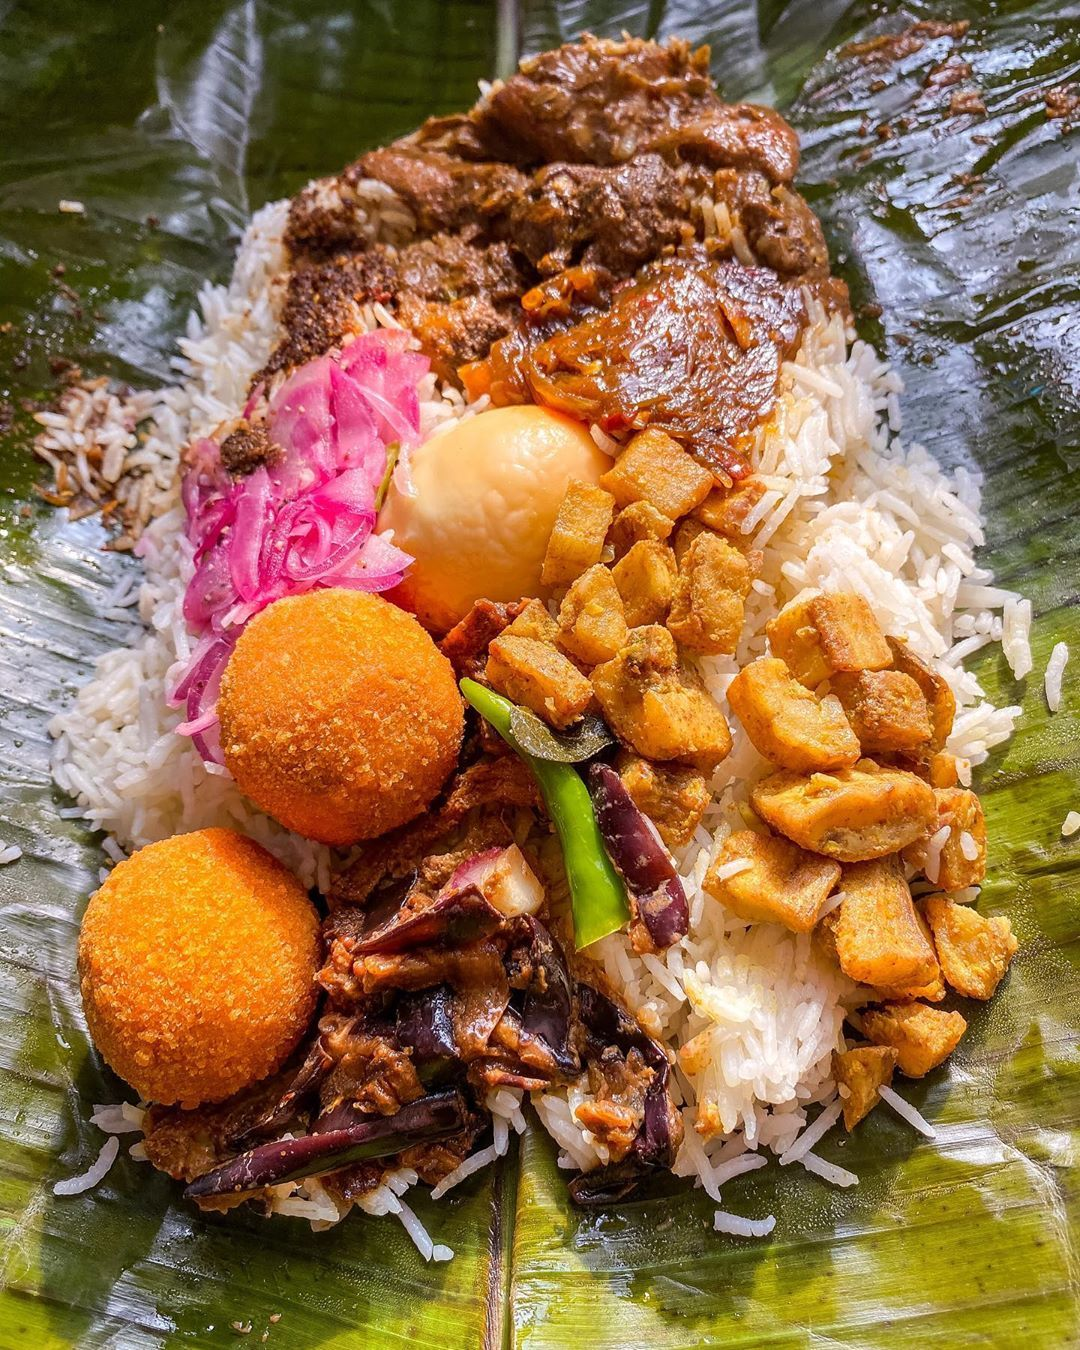 Kanda Udarata Halal Traditional Lamprais Chicken Curry Aubergine Ash Plantain Caramelised Fried Onions Fis In 2020 How To Cook Eggs Halal Recipes Foodie